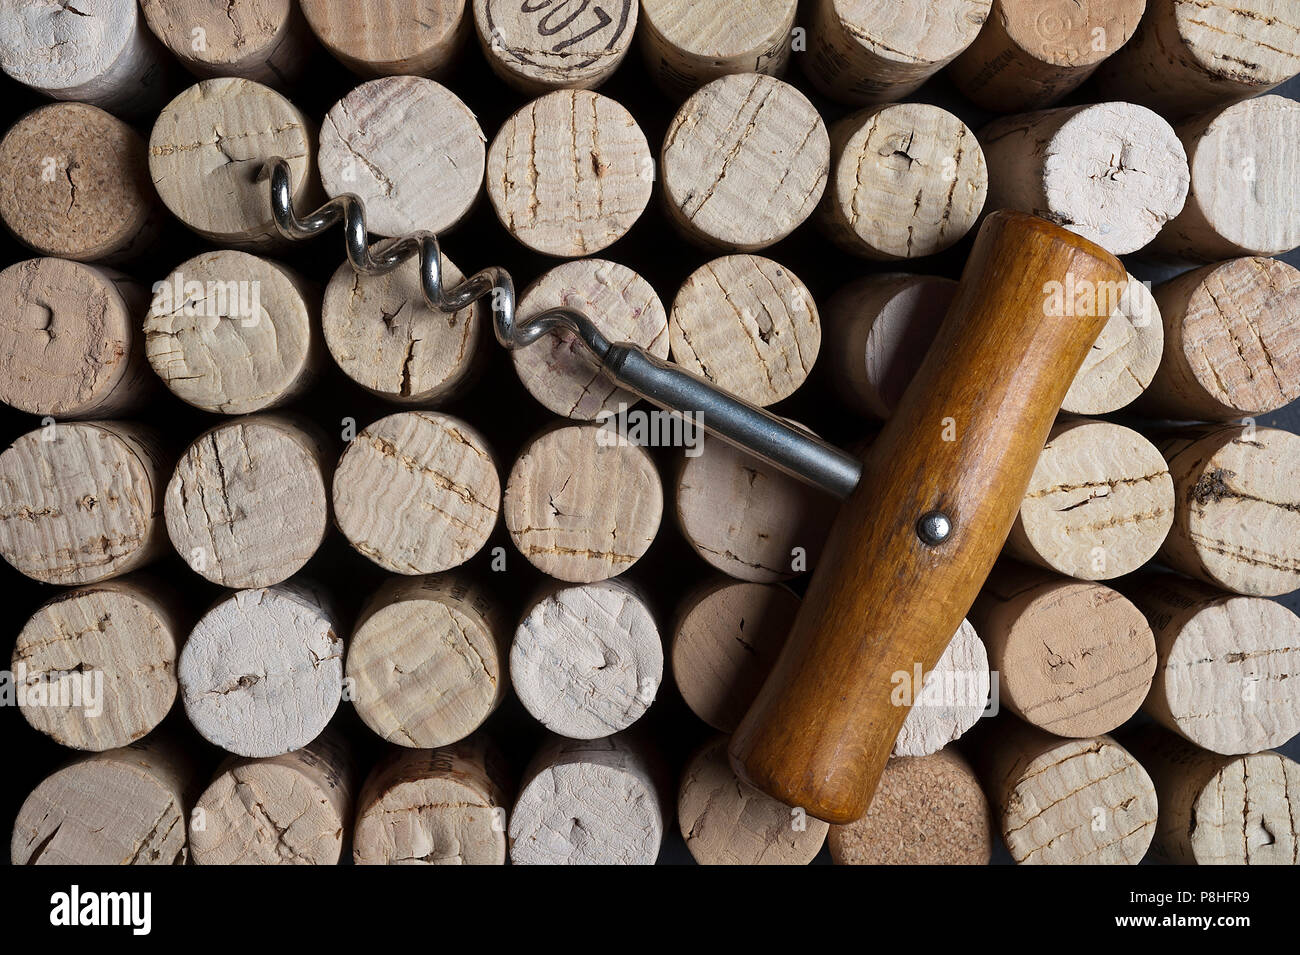 Korkenzieher mit Korken. Corkscrew with cork. - Stock Image